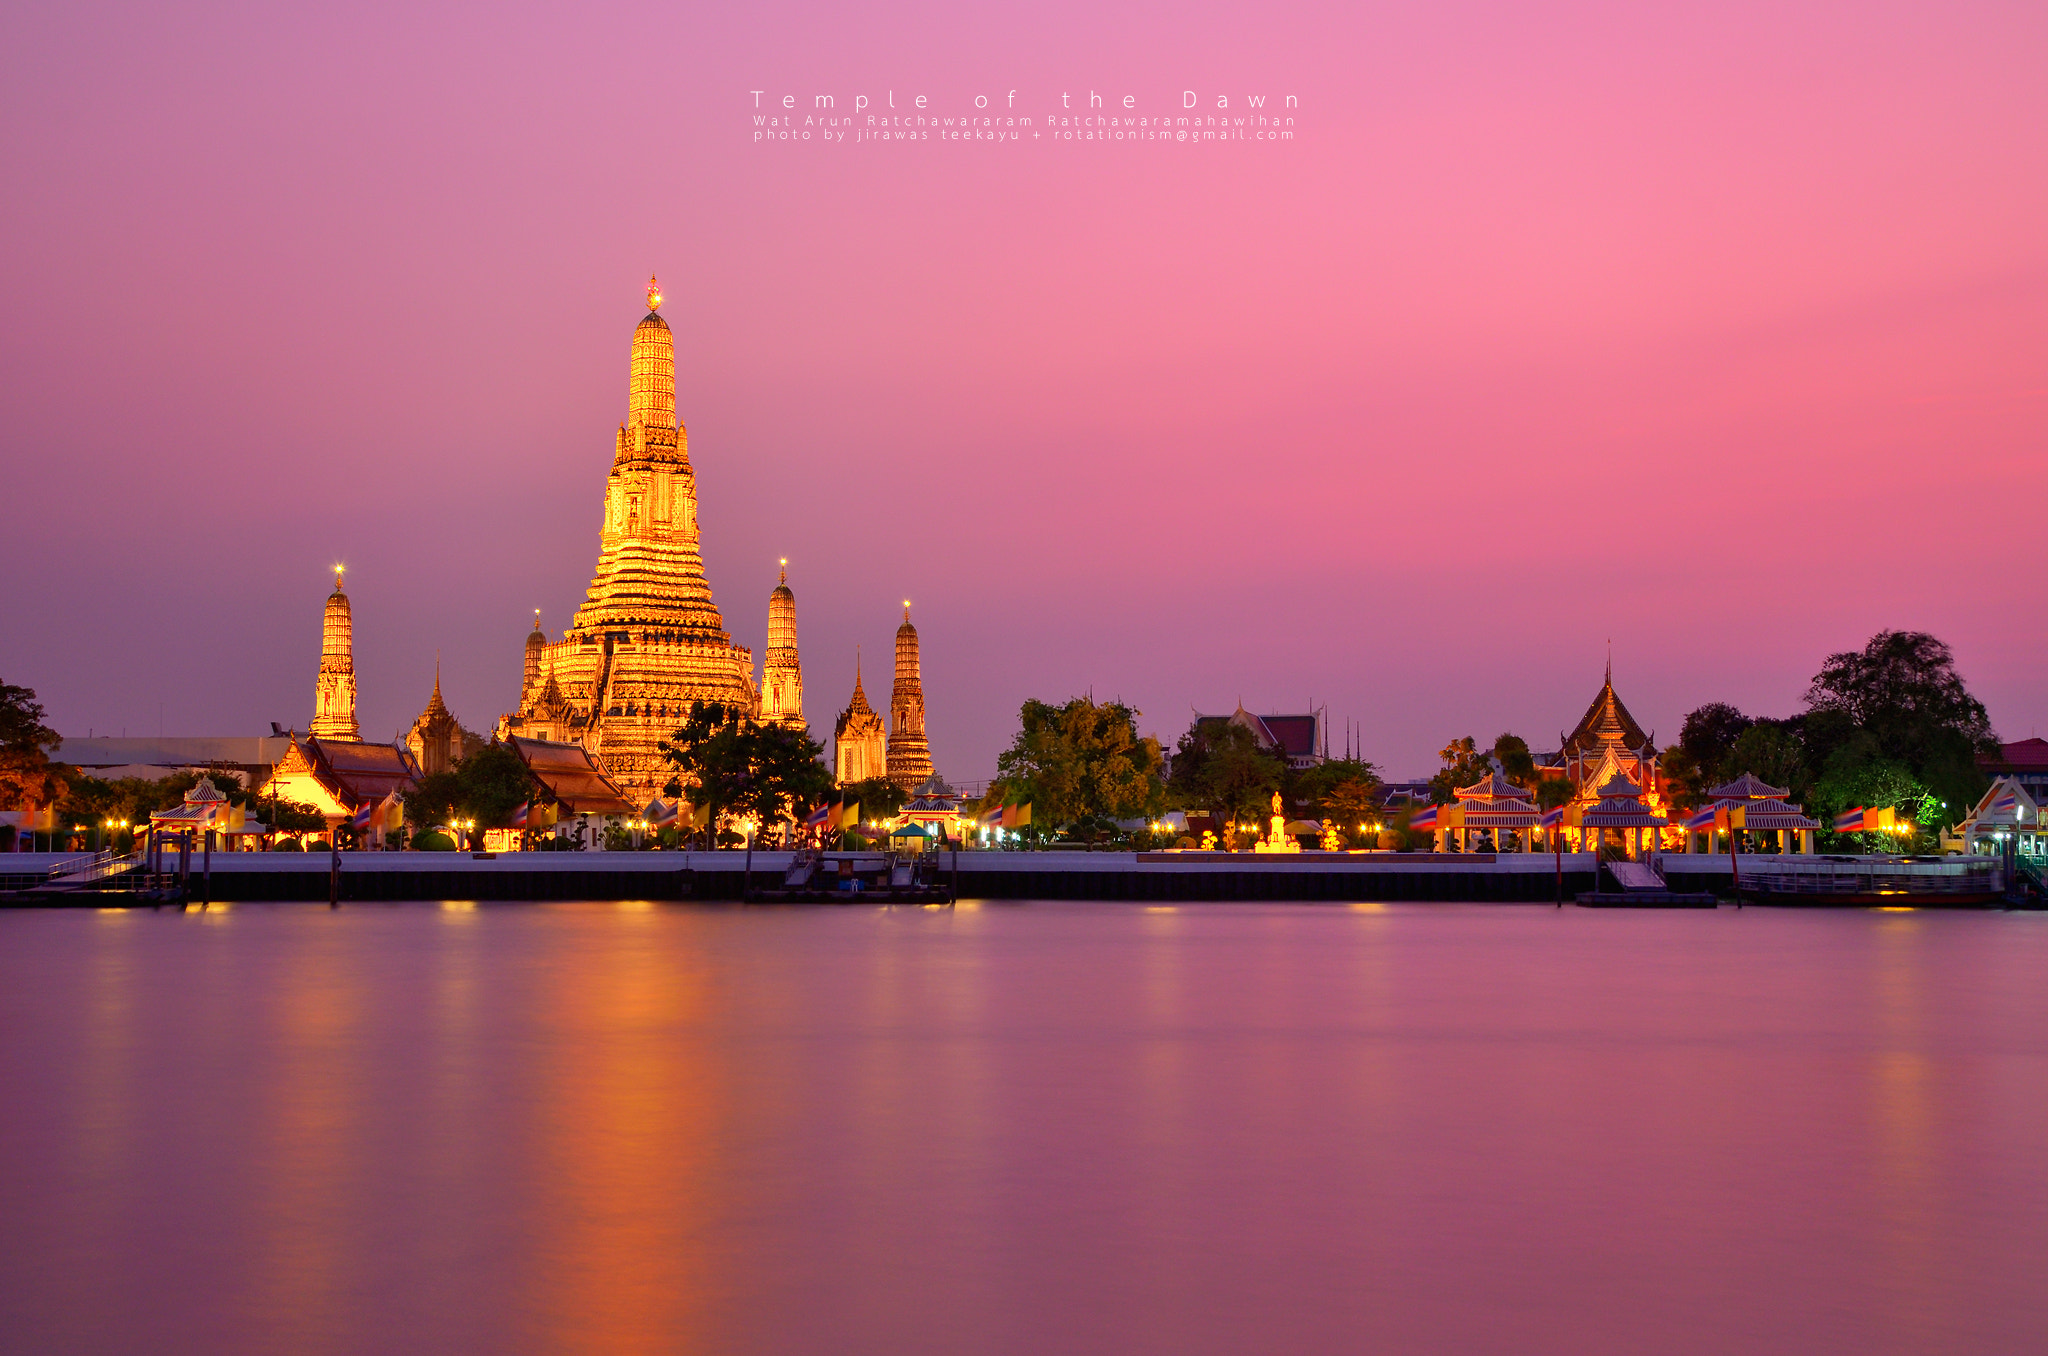 Photograph Temple at Dusk by Jirawas Teekayu on 500px